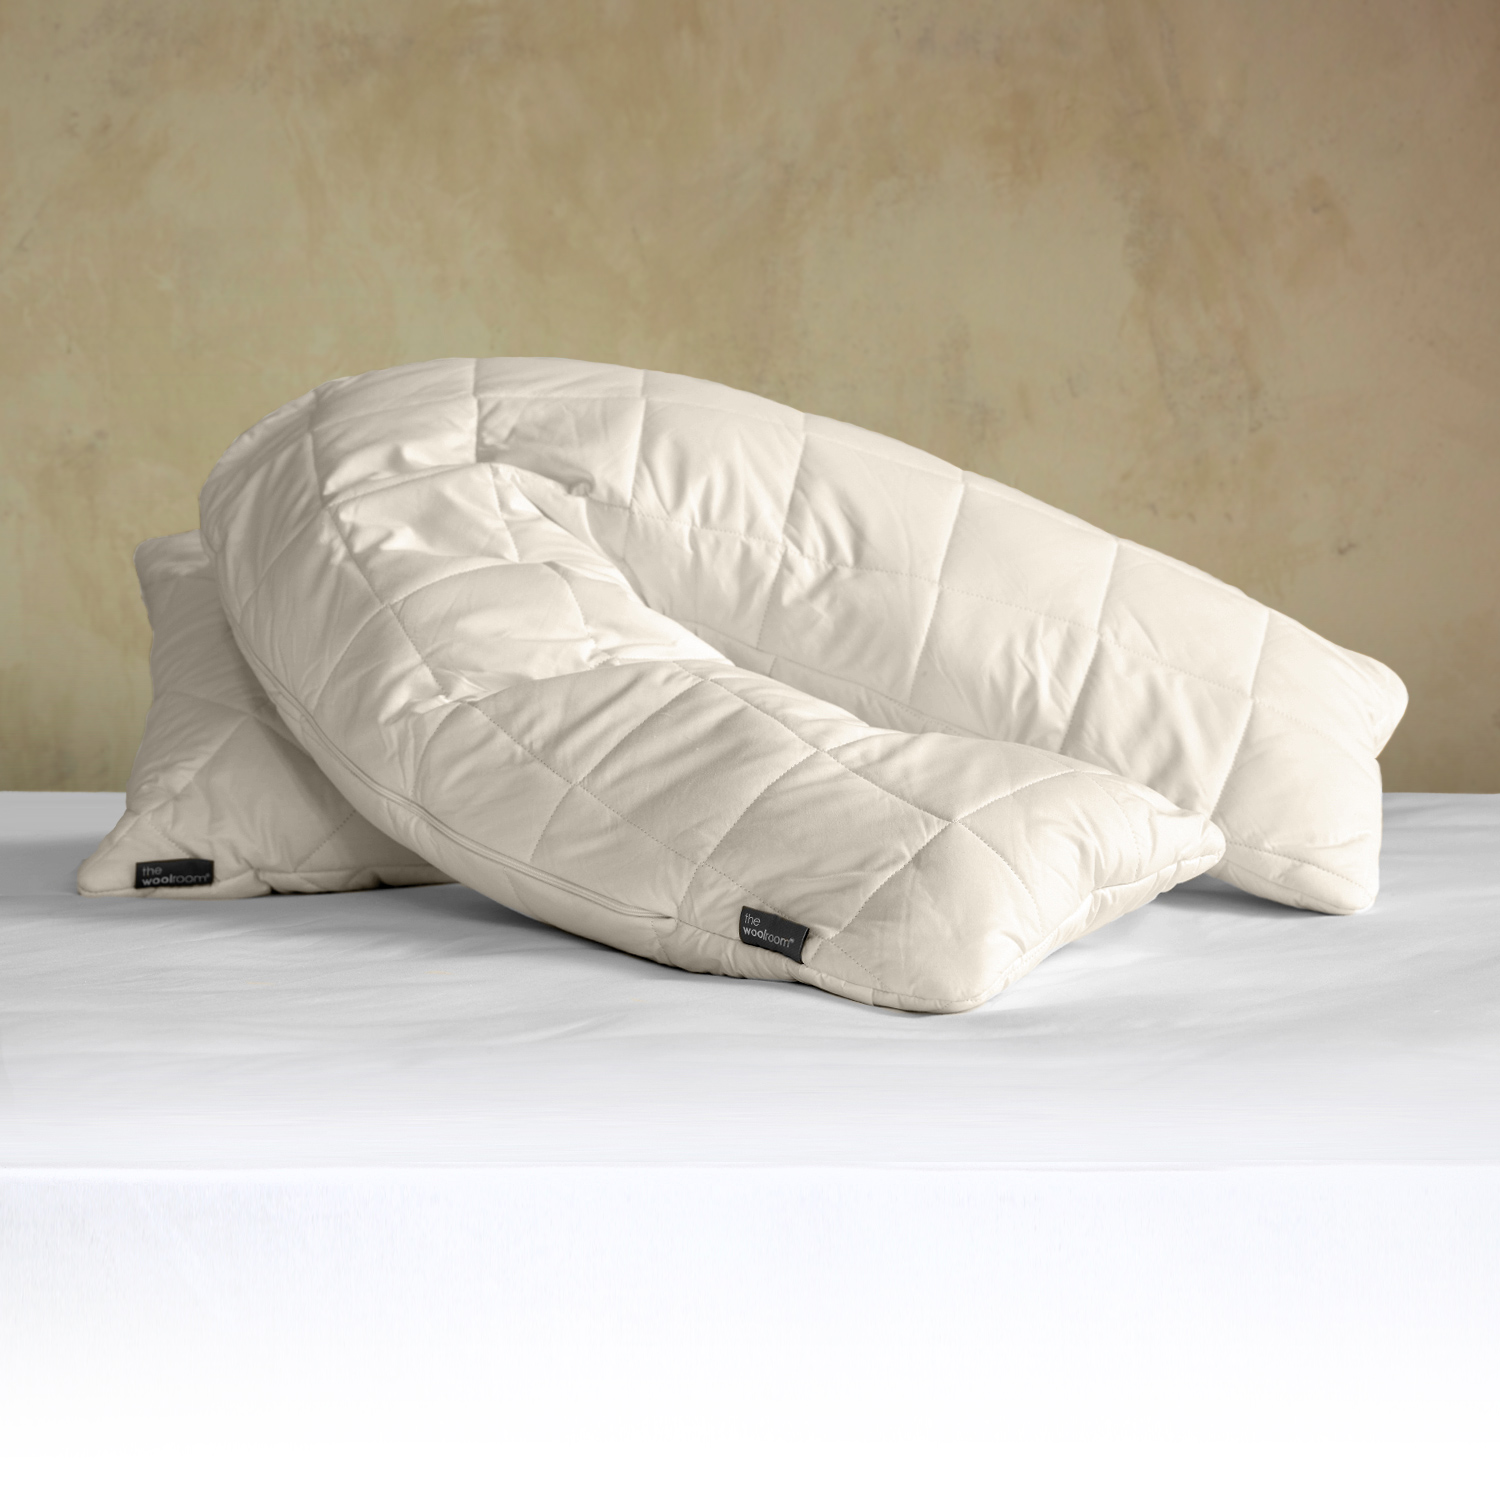 V Shaped Deluxe Wool Pillow | woolroom